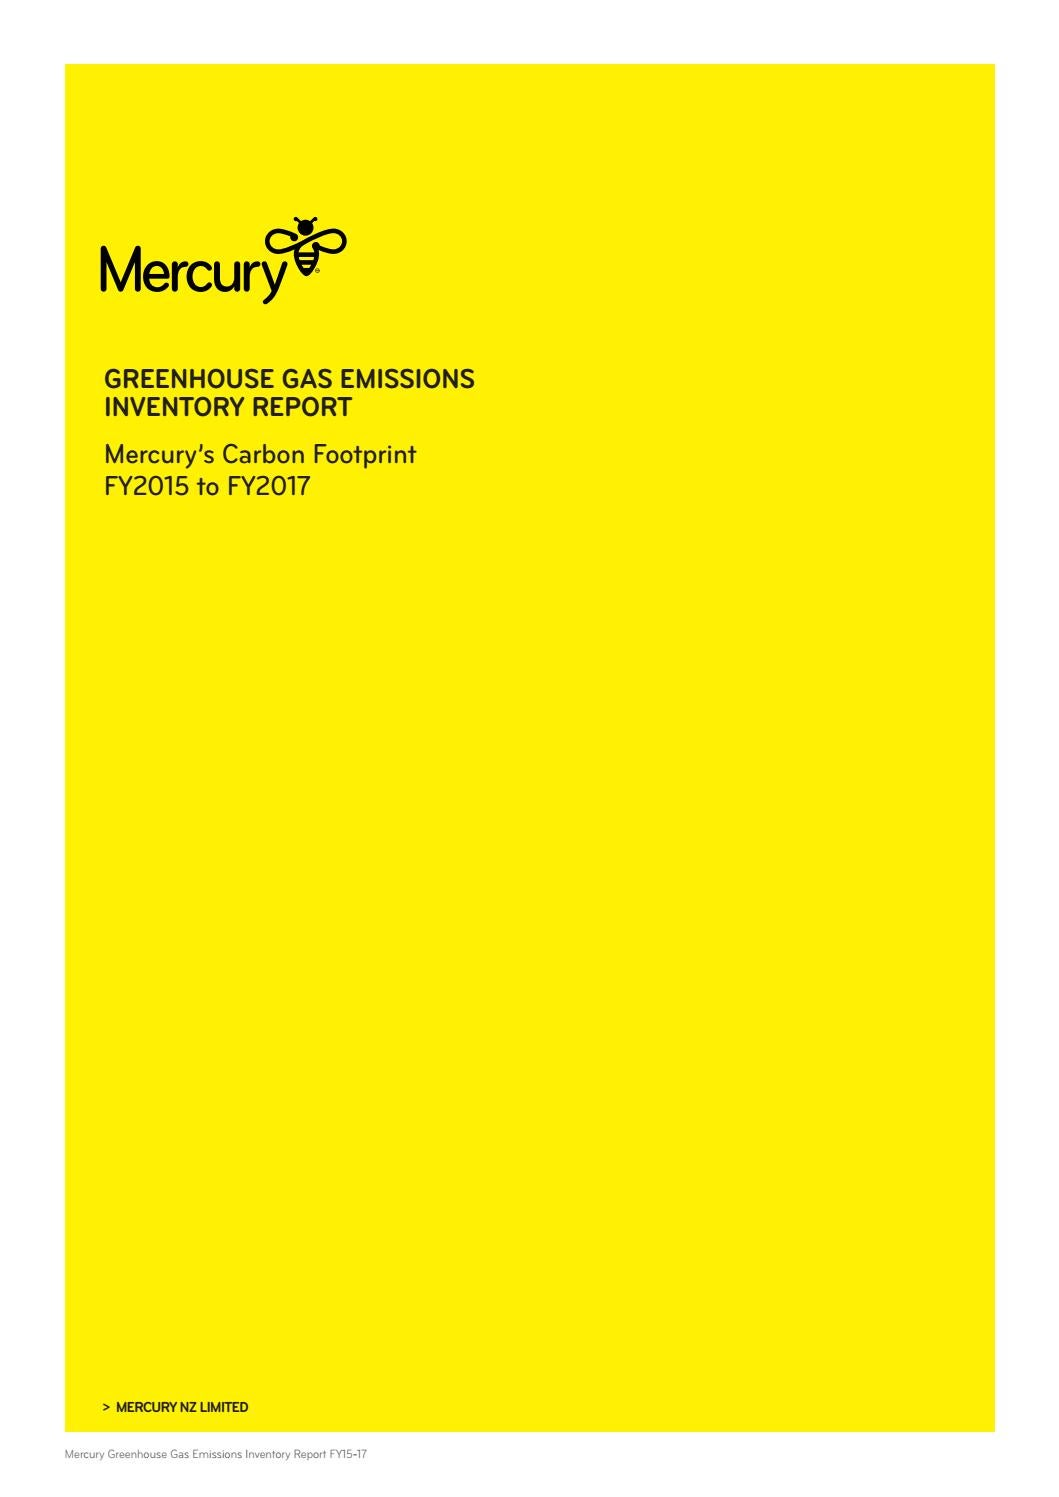 Greenhouse Gas Emissions Inventory Report by Mercury - issuu